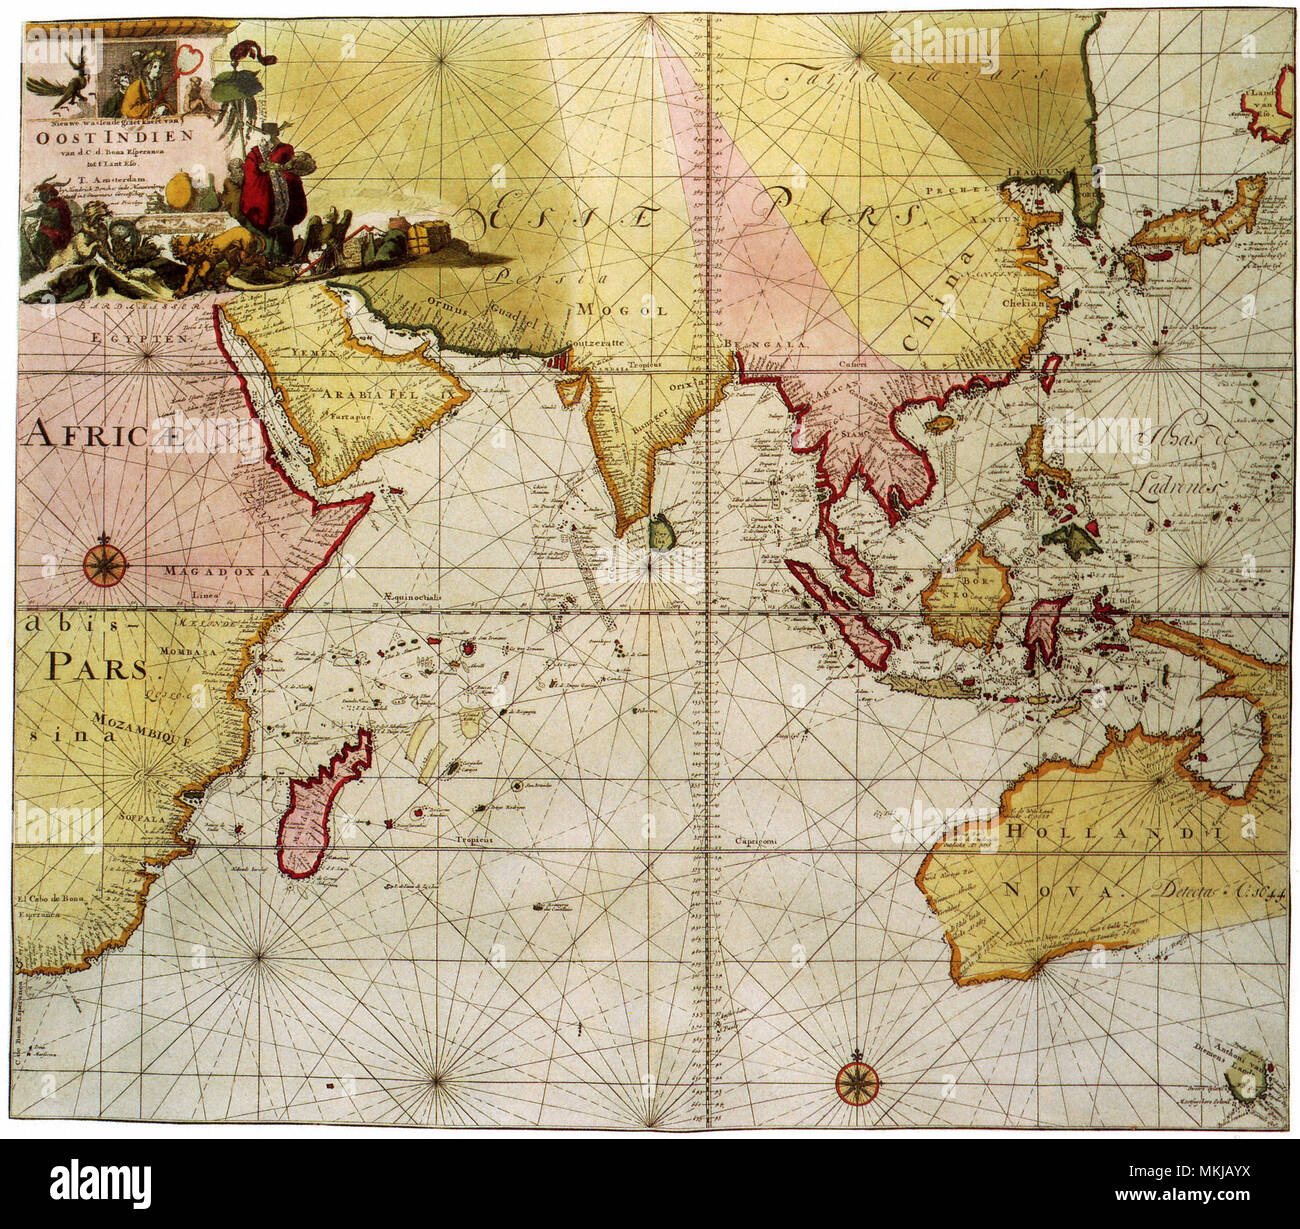 Map of the Indian Ocean 1700 Stock Photo: 184185902 - Alamy